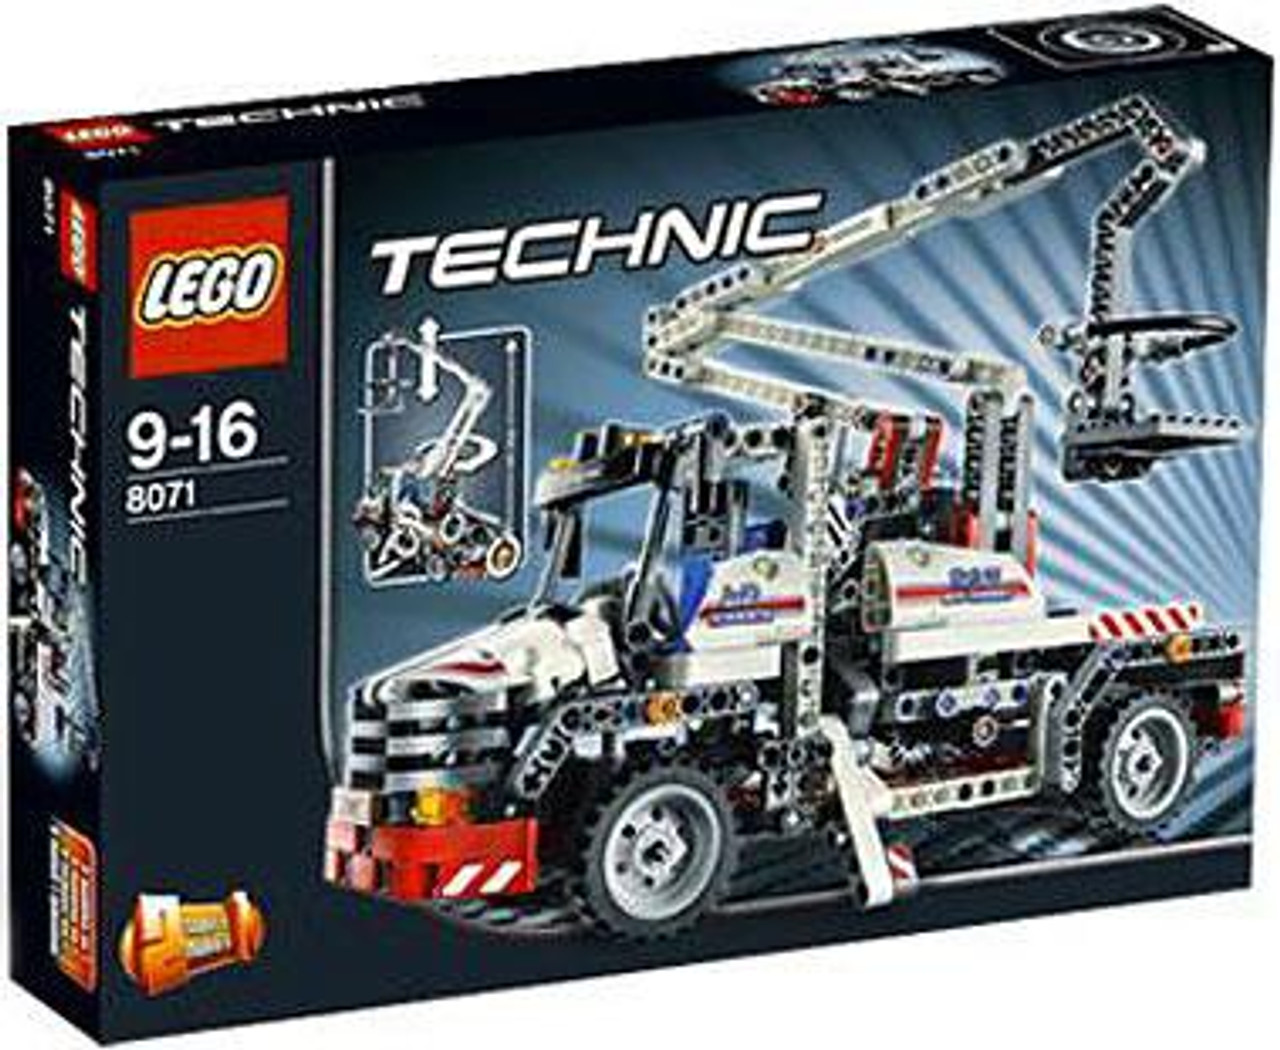 LEGO Technic Bucket Truck Set #8071